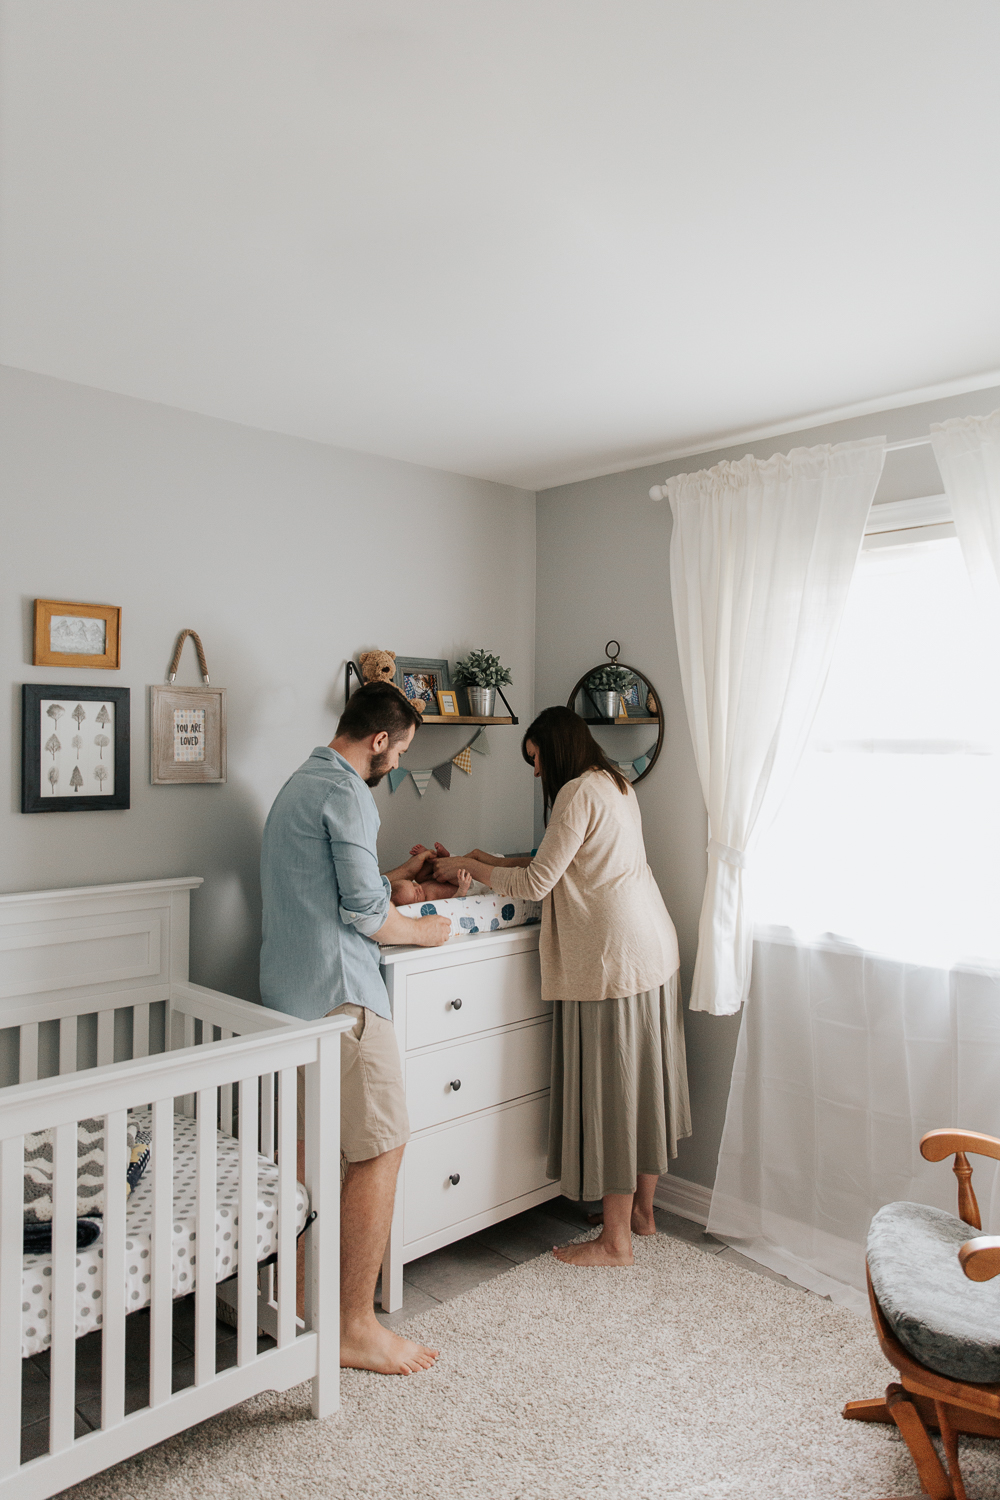 first time parents standing in nursery at change table putting new diaper on 3 week old baby boy -GTA Lifestyle Photos